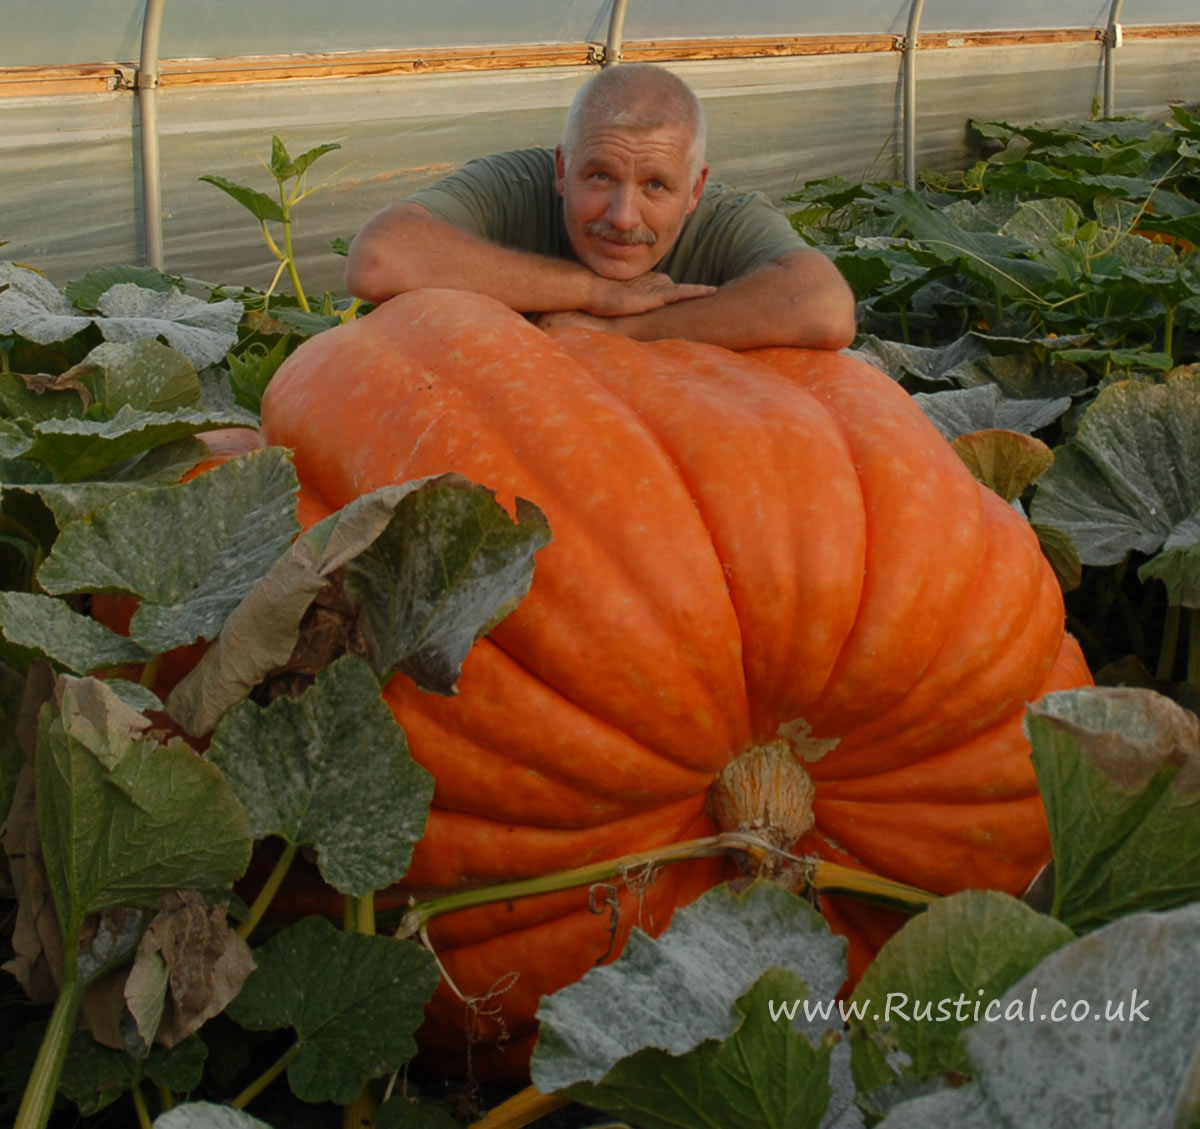 A nicely shaped orange coloured giant pumpkin